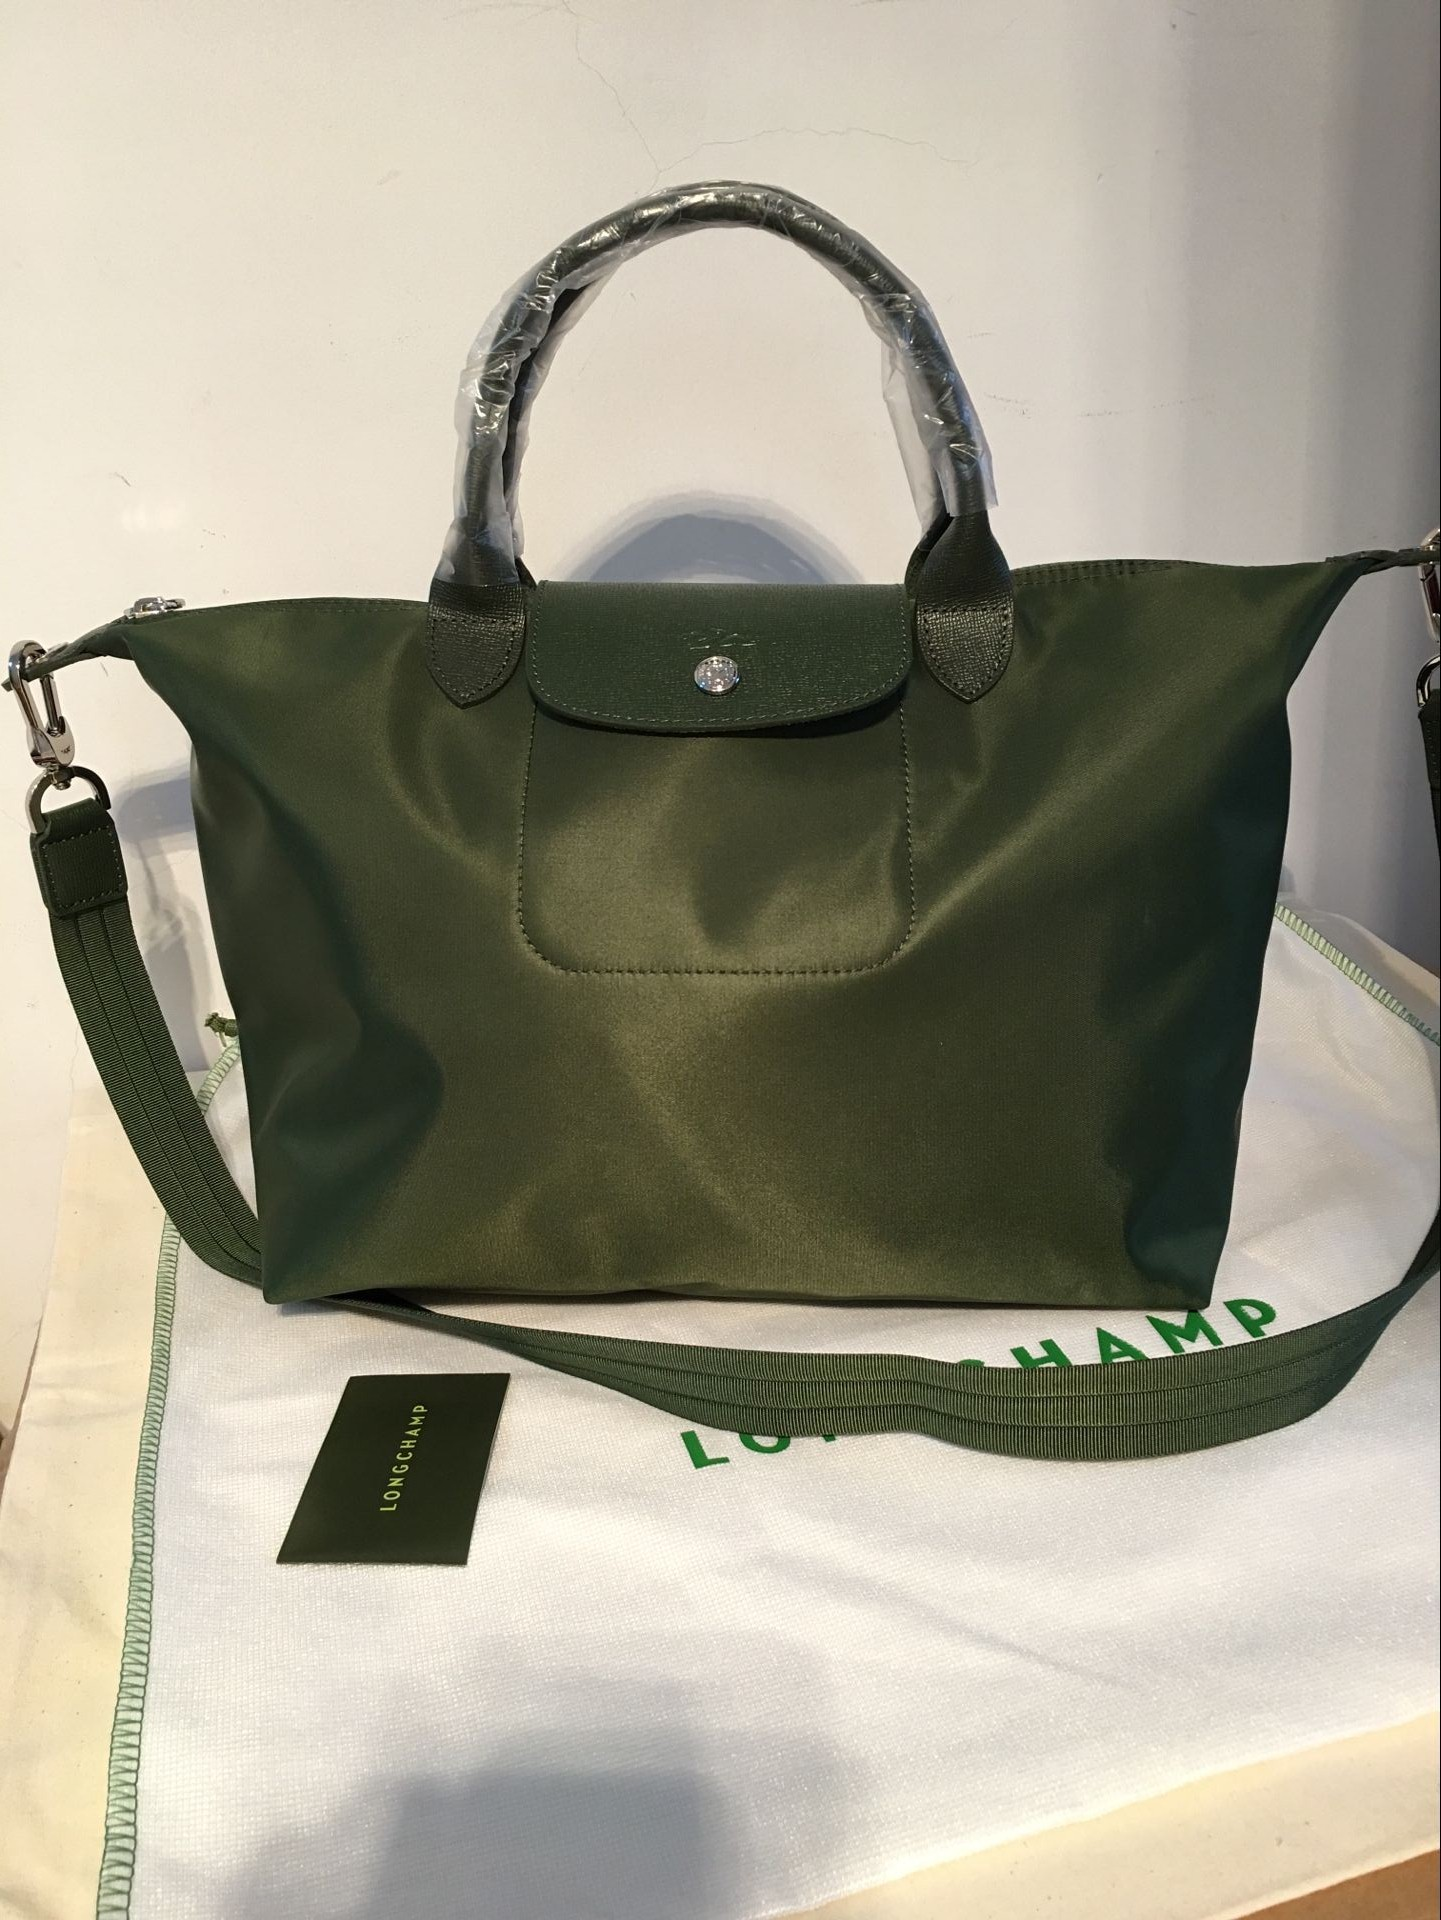 5115357cc782 Authentic Longchamp Neo Medium Handbag Moss Green 1515578749 on Storenvy